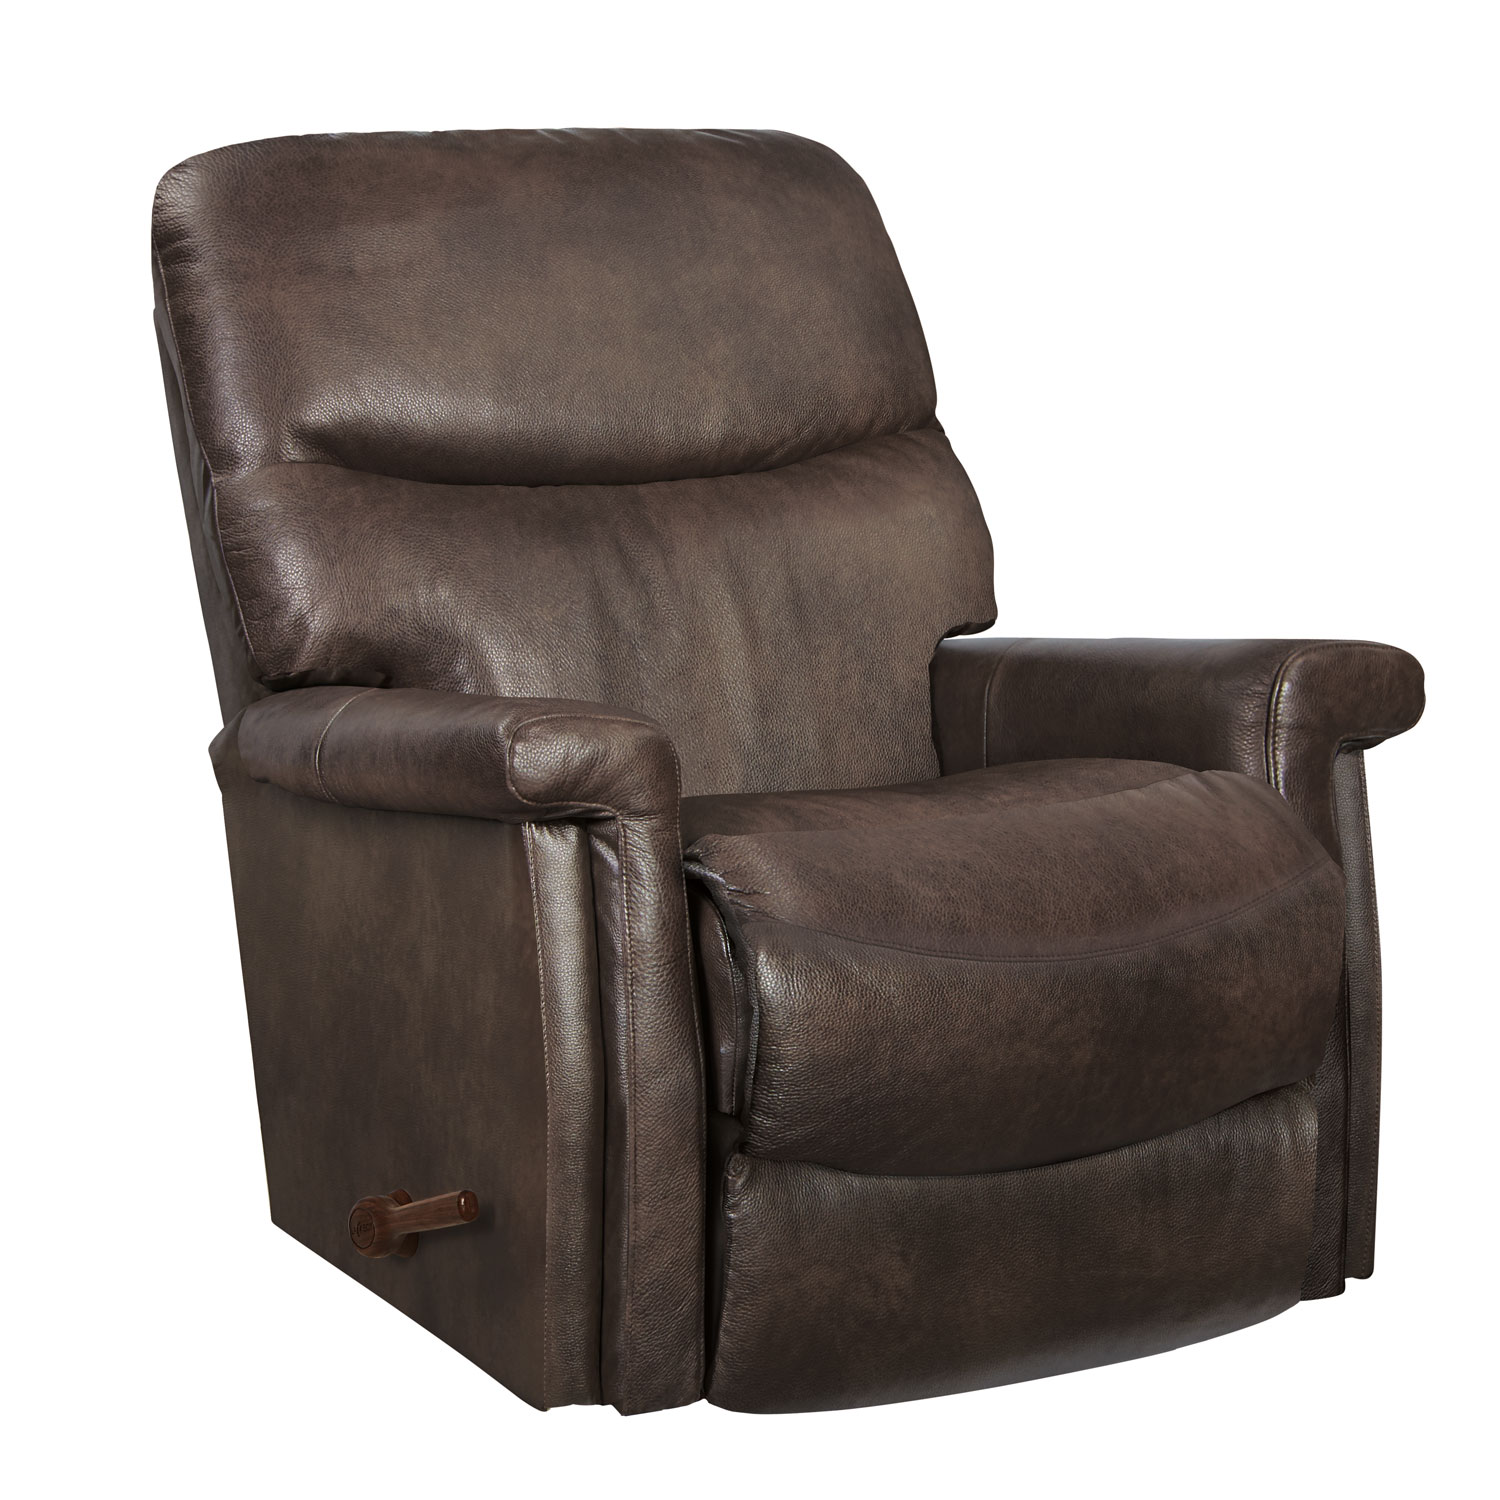 Z Chairs Sale Lazboy 10 729 Baylor Leather Rocker Recliner Hope Home